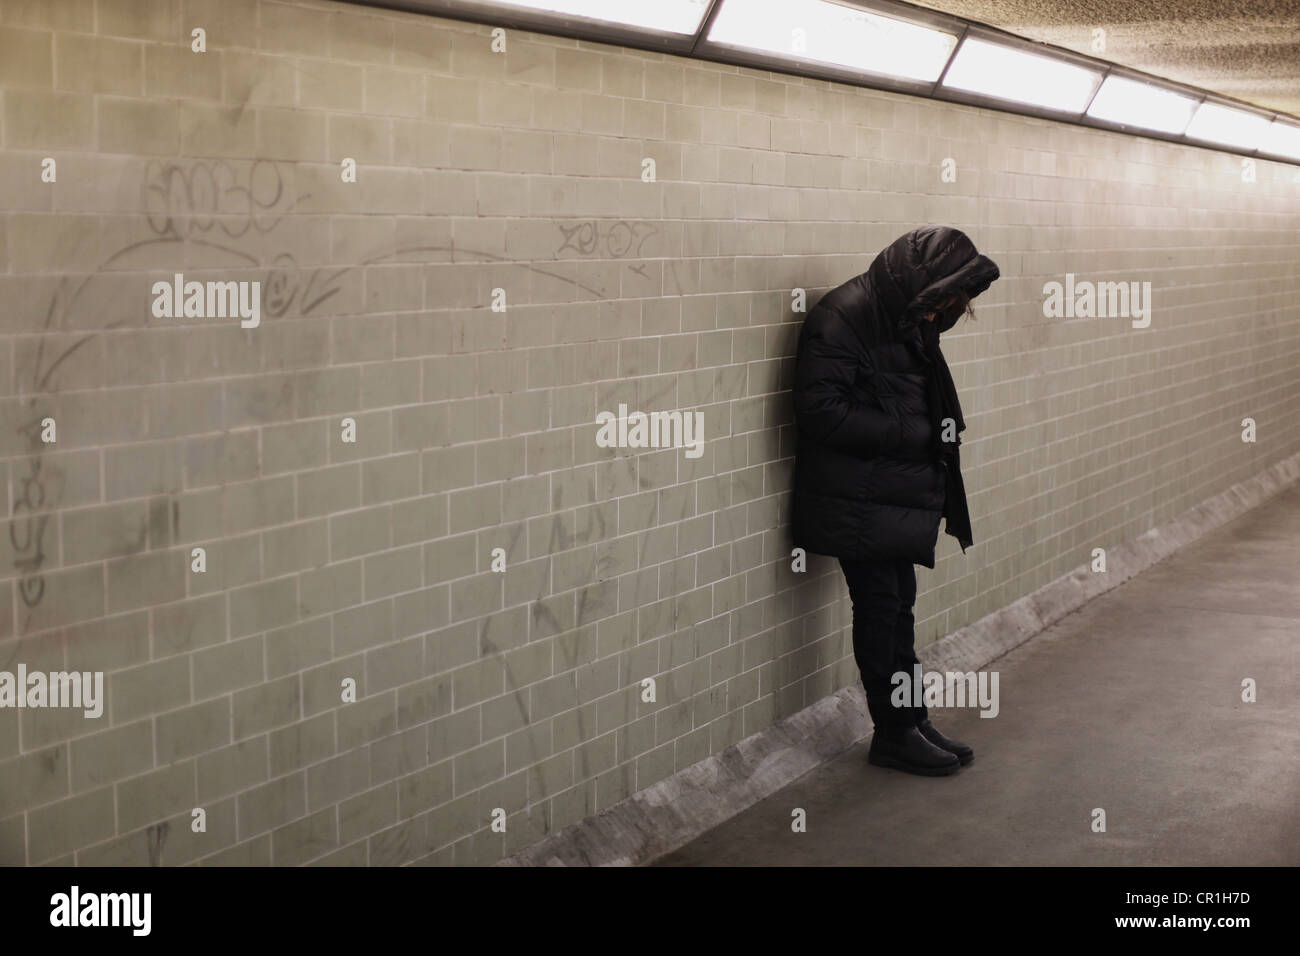 Hooded person leaning on subway wall - Stock Image